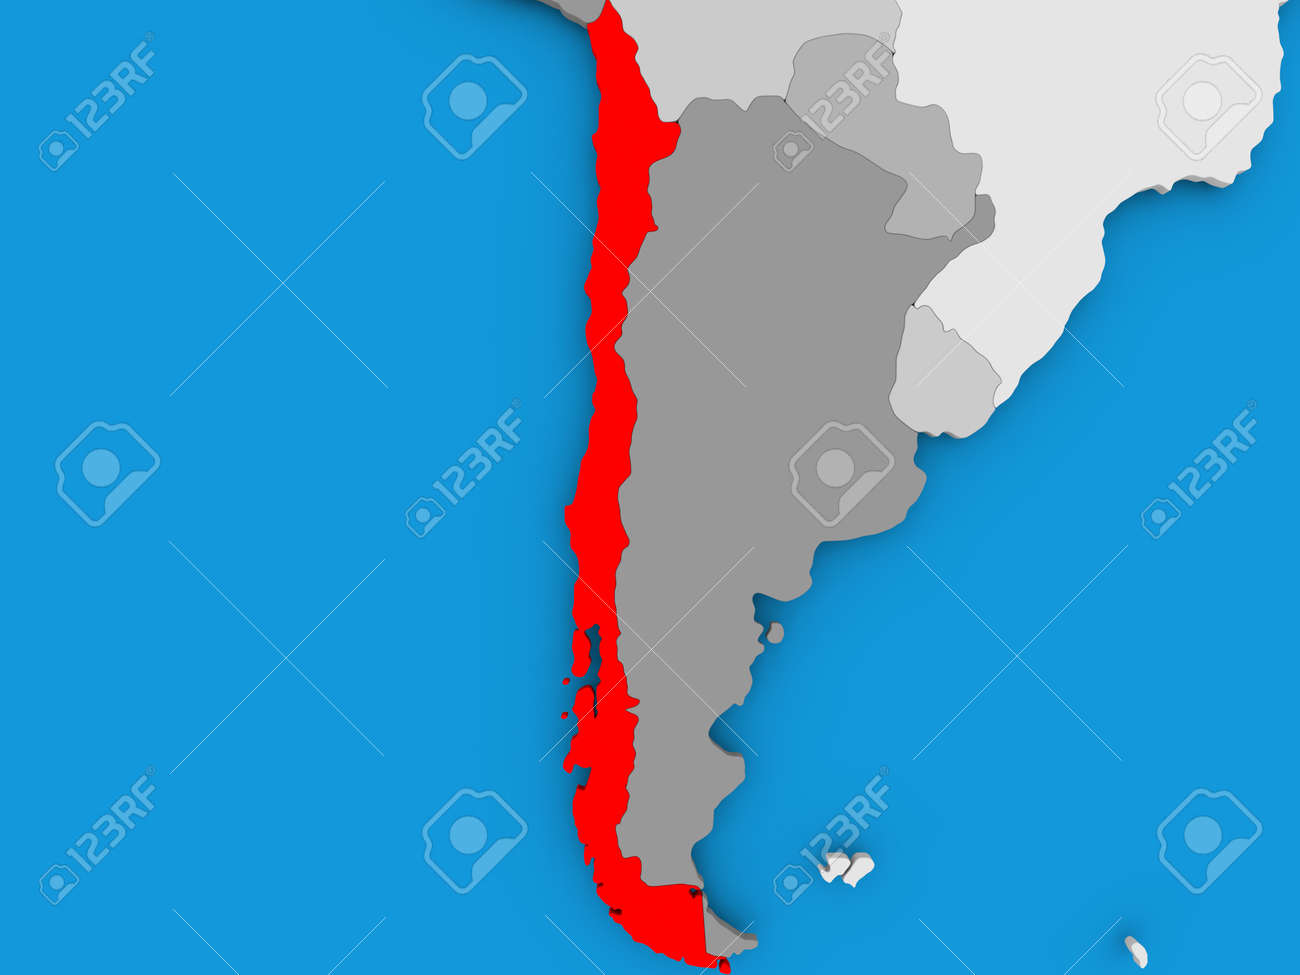 Chile In Red On Political Map 3d Illustration Stock Photo Picture